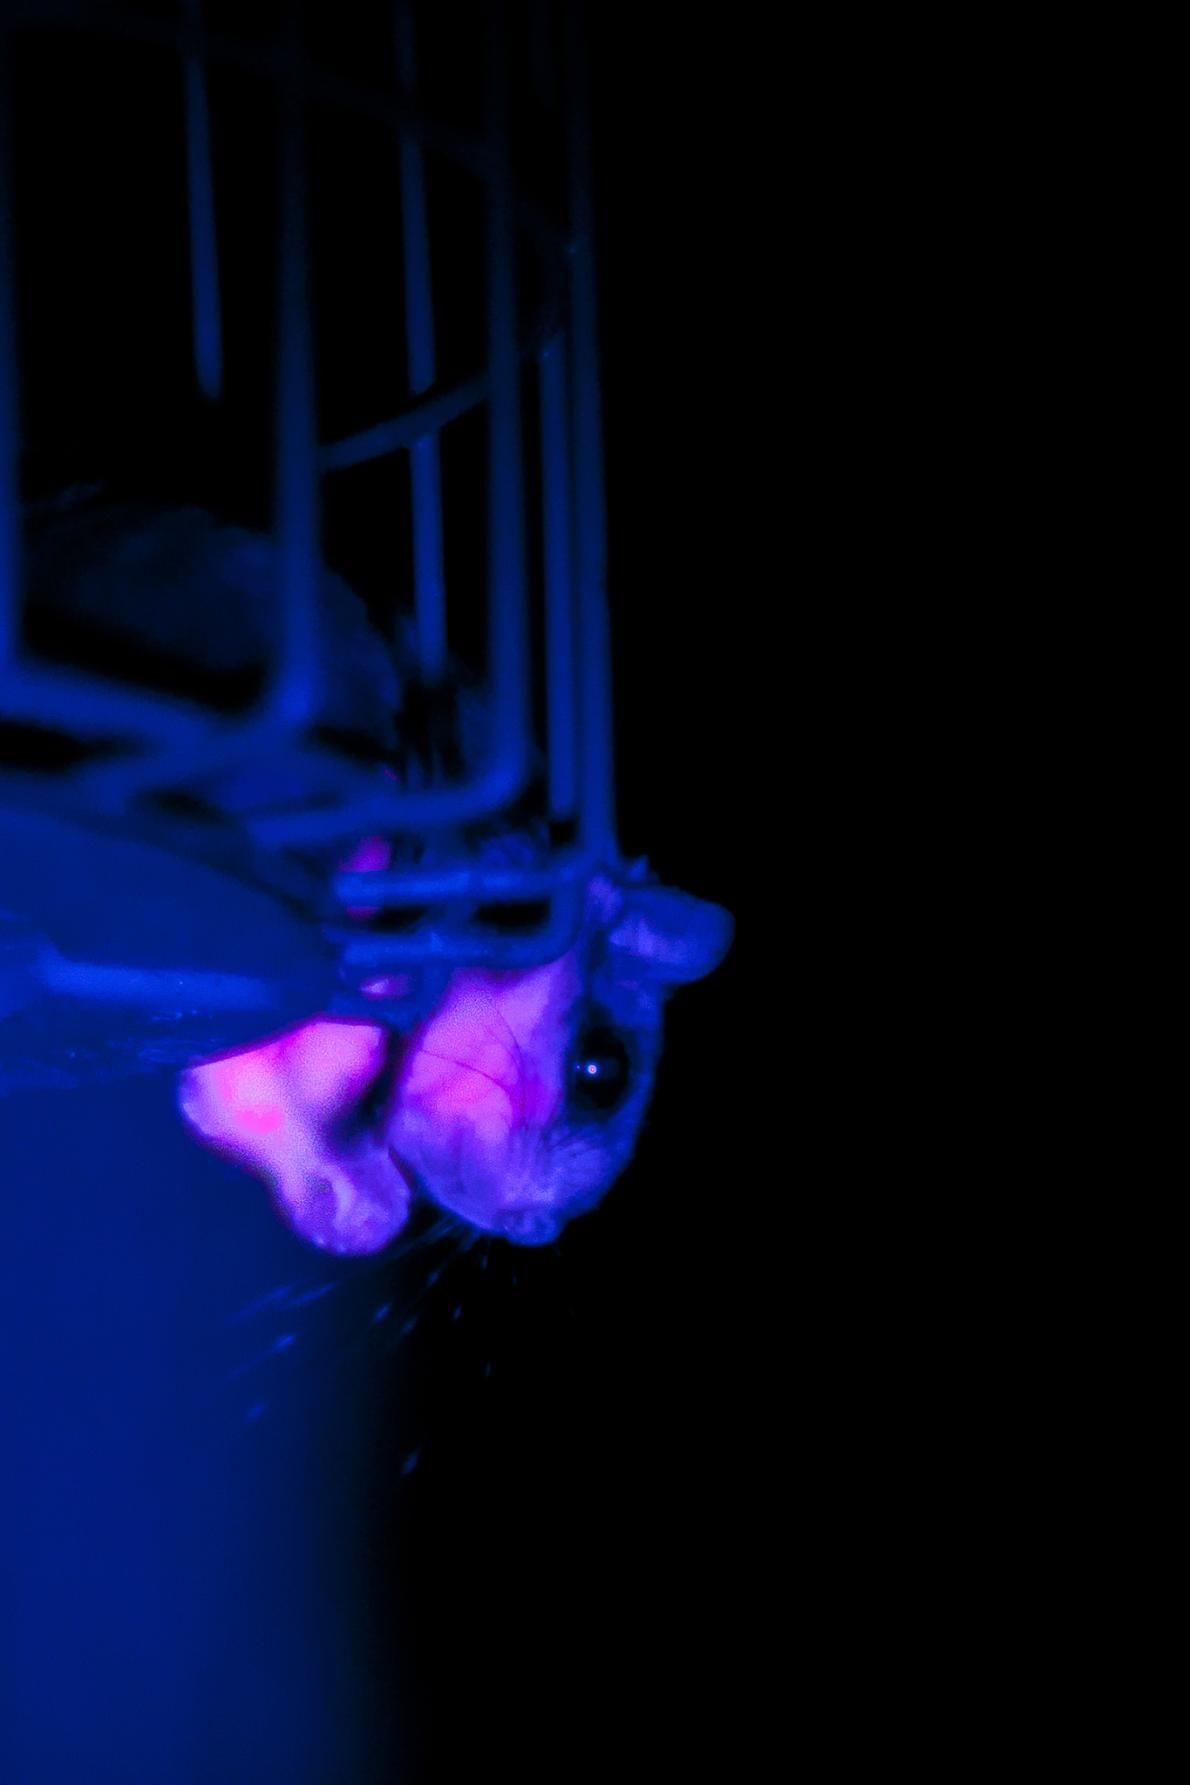 Flying Squirrels Secretly Glow Pink Thanks To Fluorescence Flying Squirrel Squirrel Wildlife Biologist